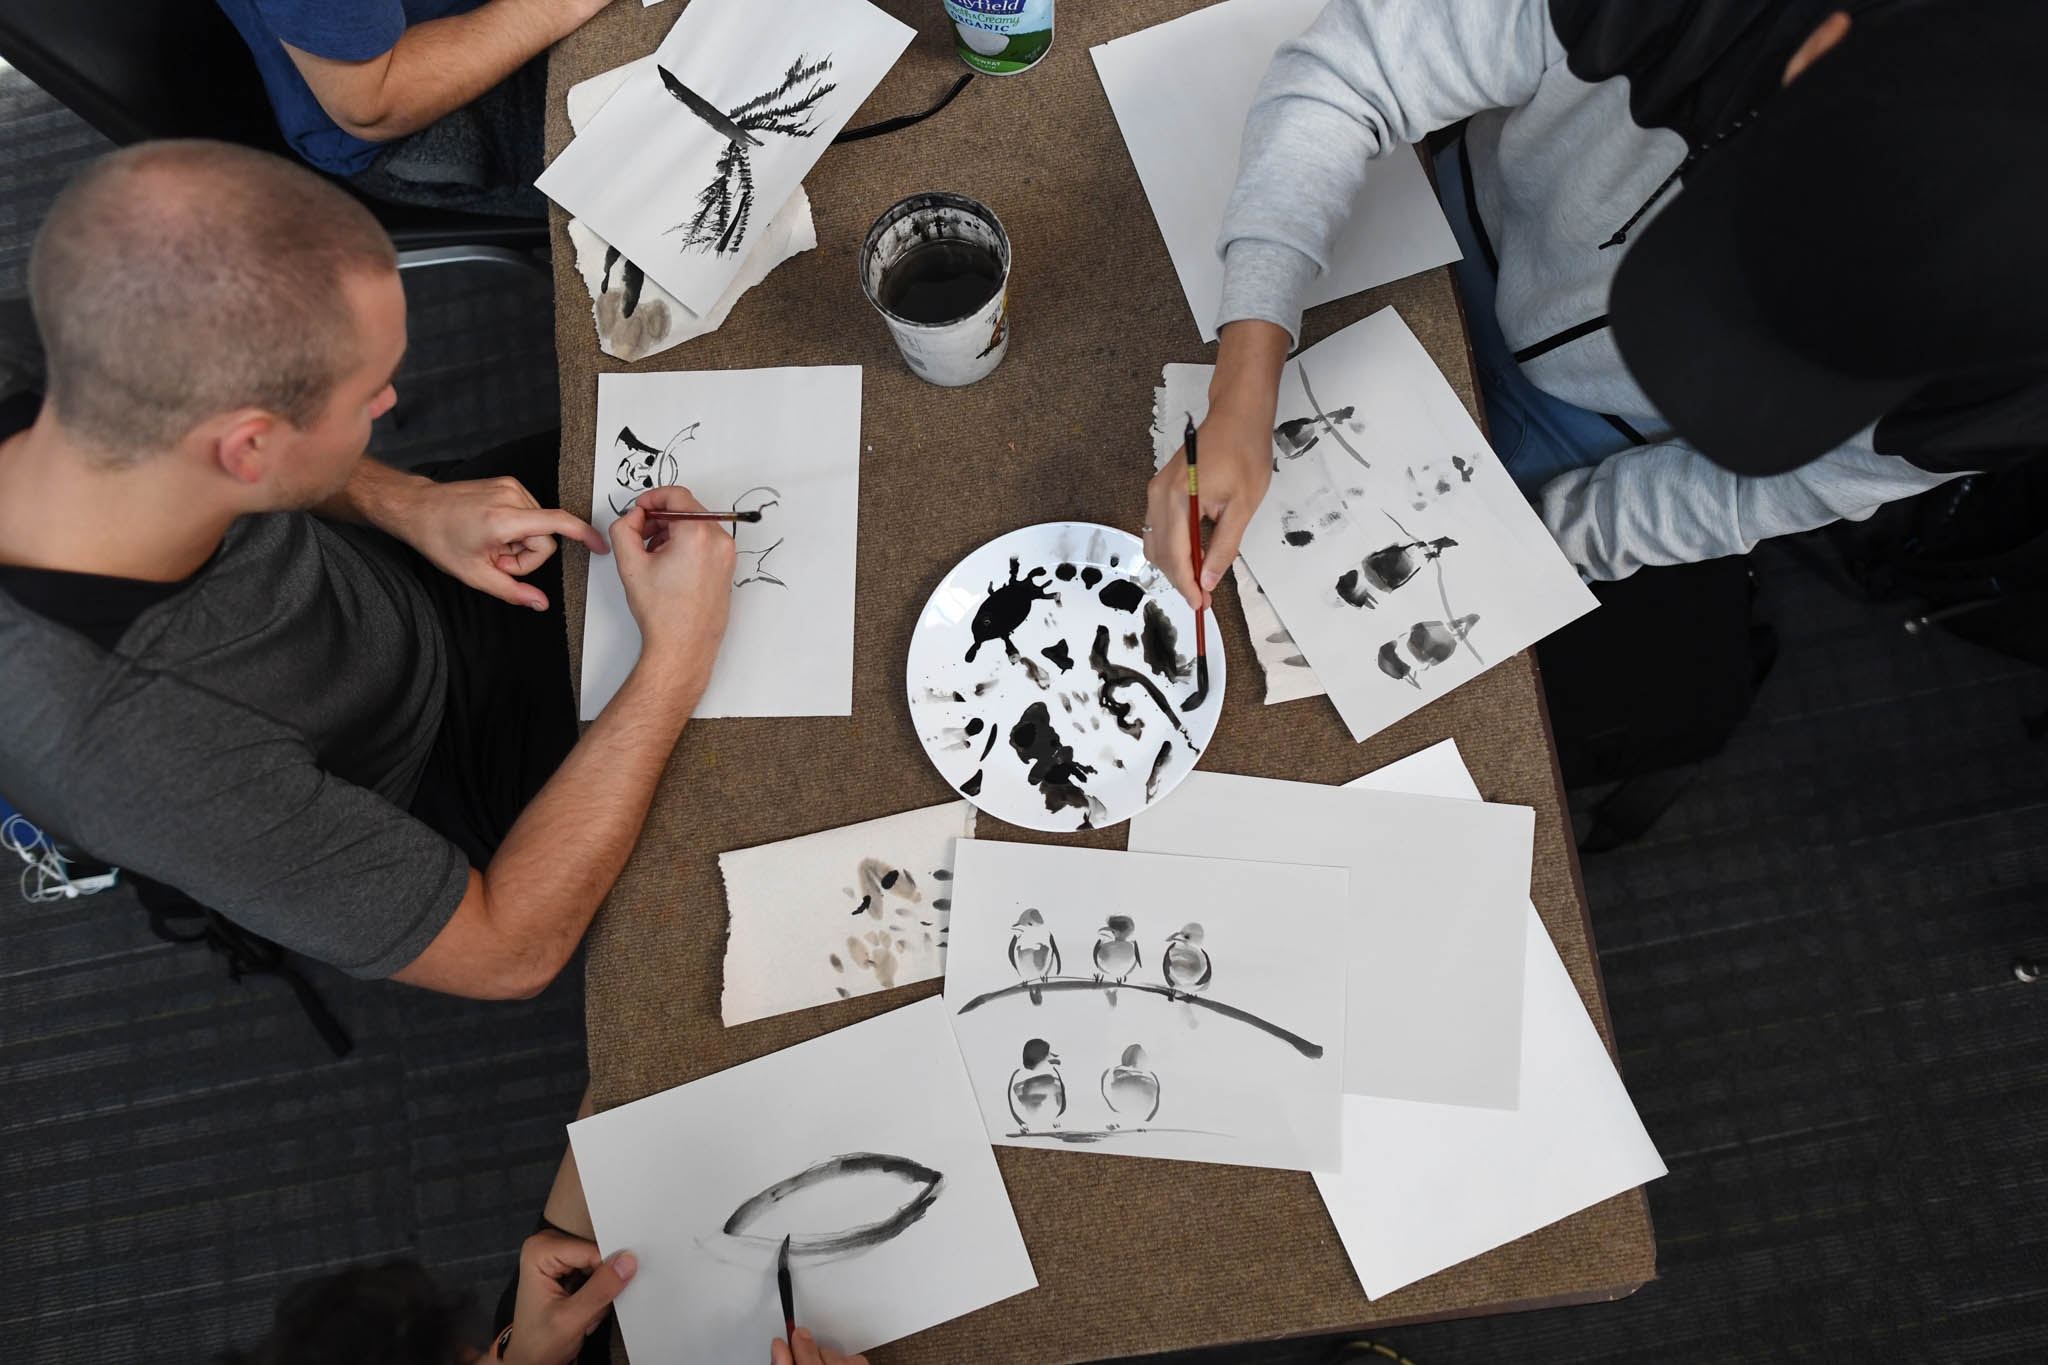 Overhead view of Chinese brush painting (© RJ Sangosti/The Denver Post/Getty Images)